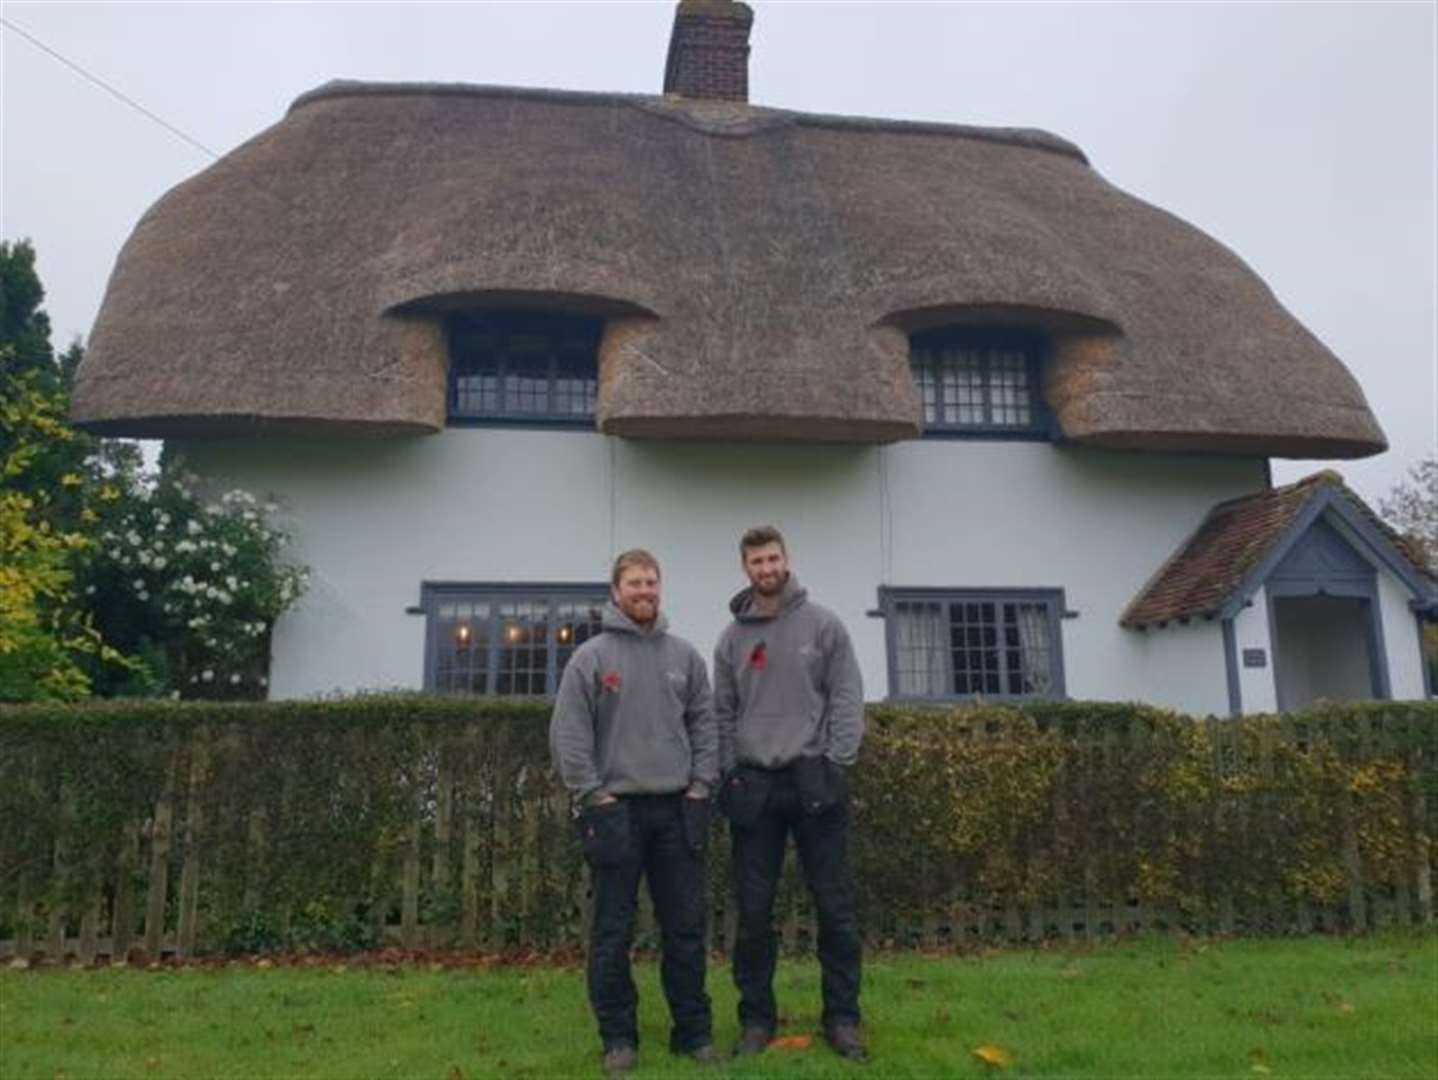 Simply Thatch in Cambridgeshire specialises in creating and restoring roofs